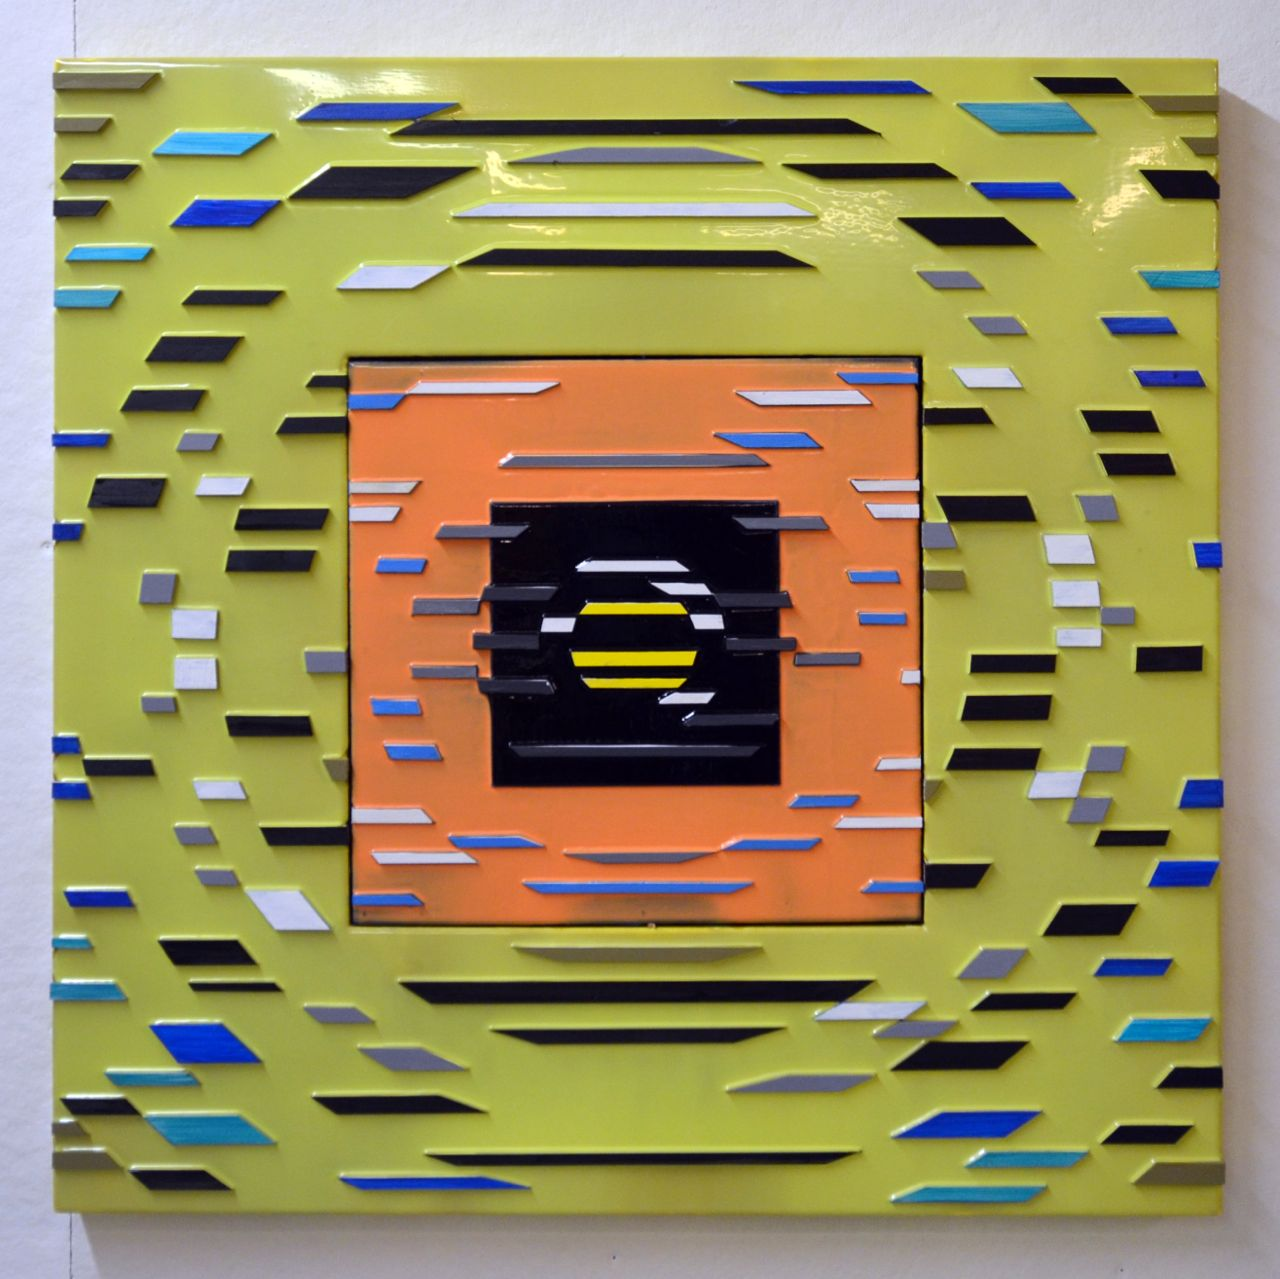 'Disco Bretheren' Poured acrylic paint and wood on panel, 36 x 36 in, 2011